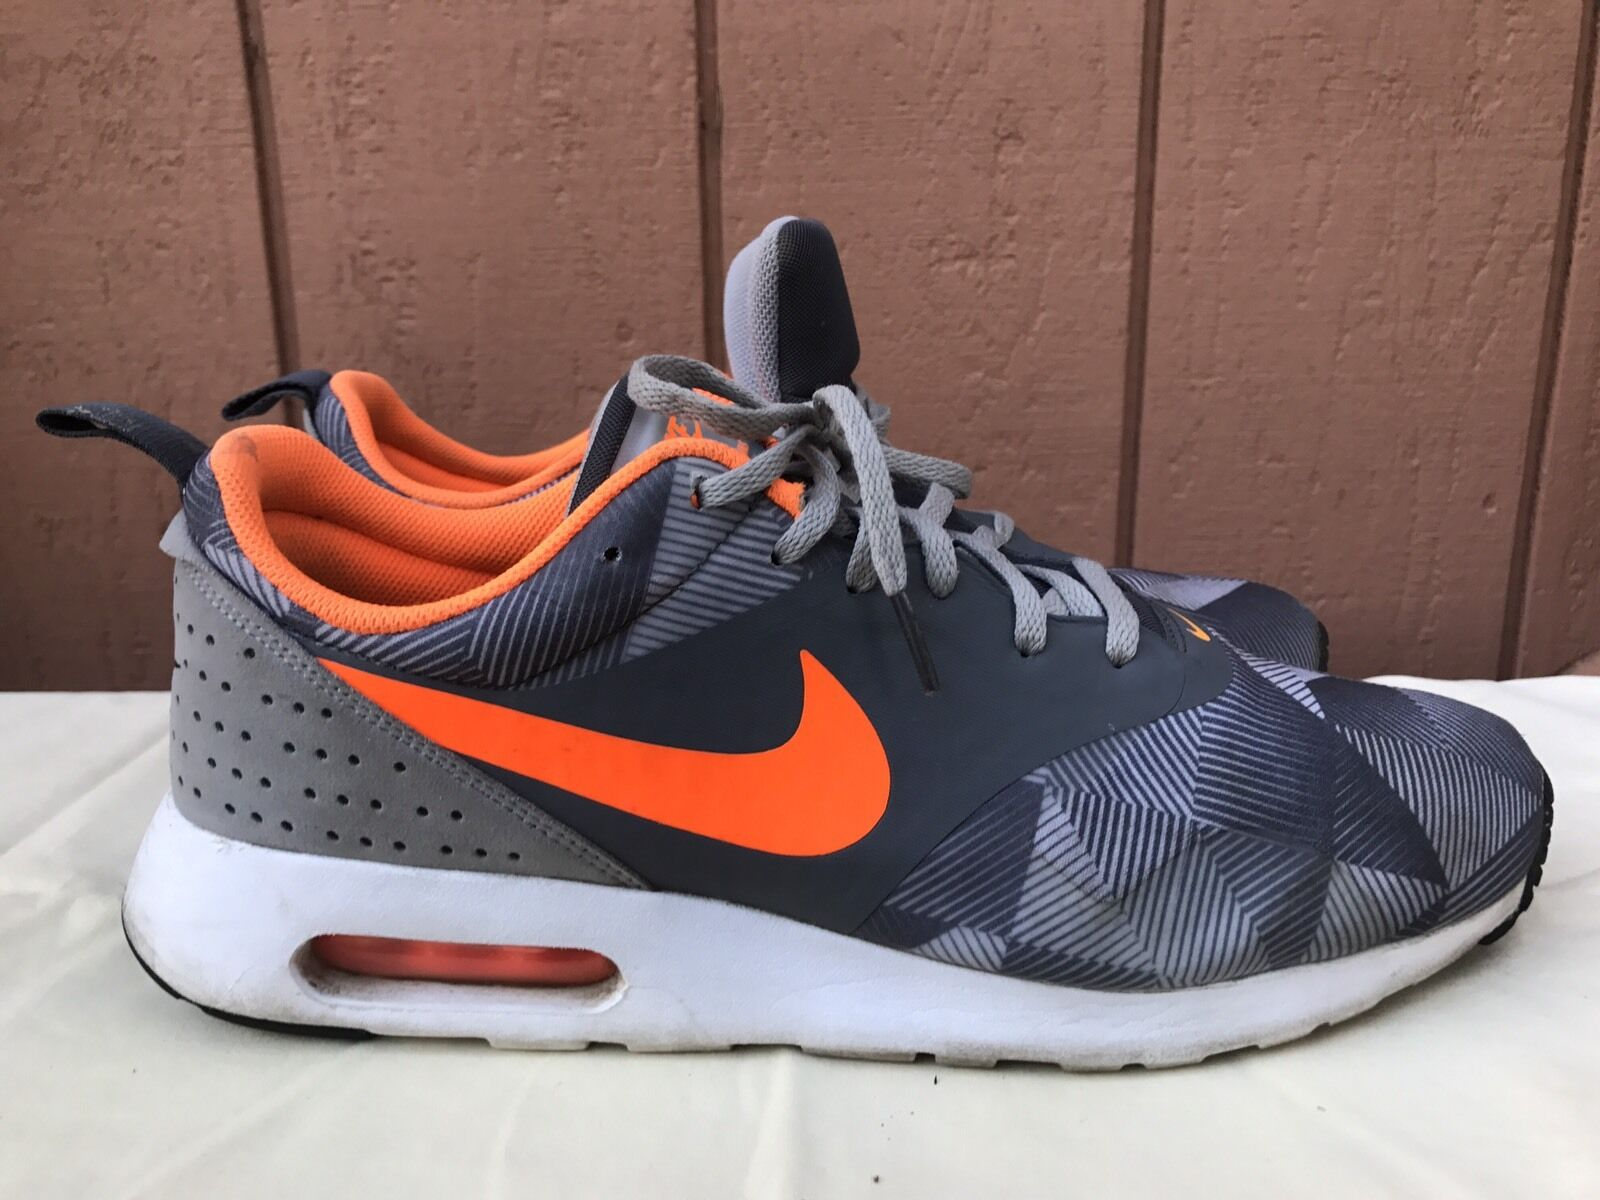 Nike air 742781 max tavas euc bei gray orange laufschuh 742781 air 018 uns 11,5 bec29d